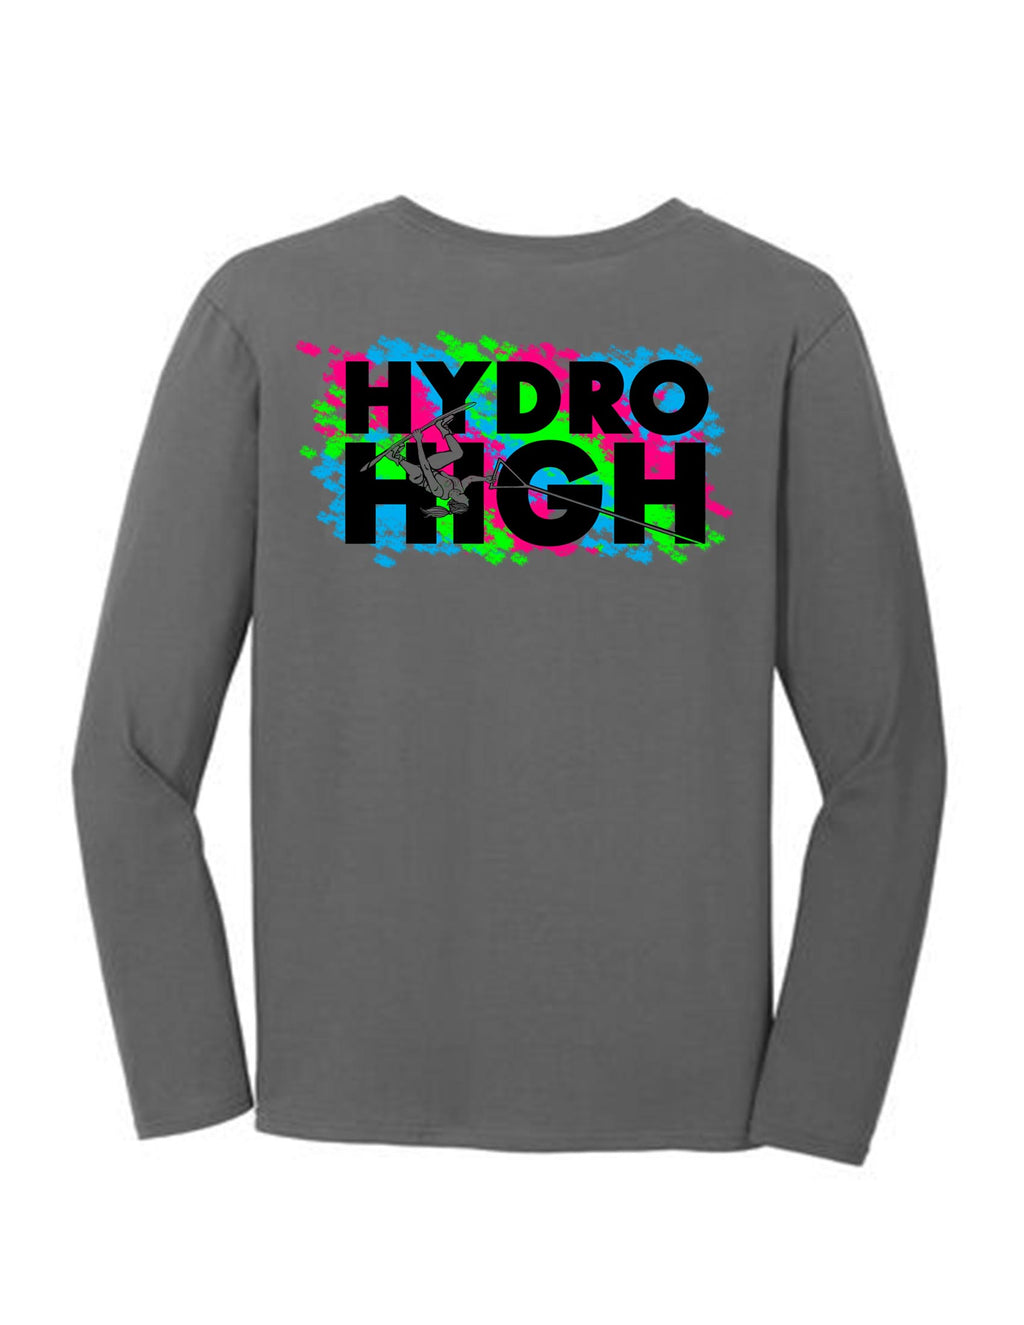 Hydro High Wakeboard Girl Long Sleeve T-Shirt Back Design